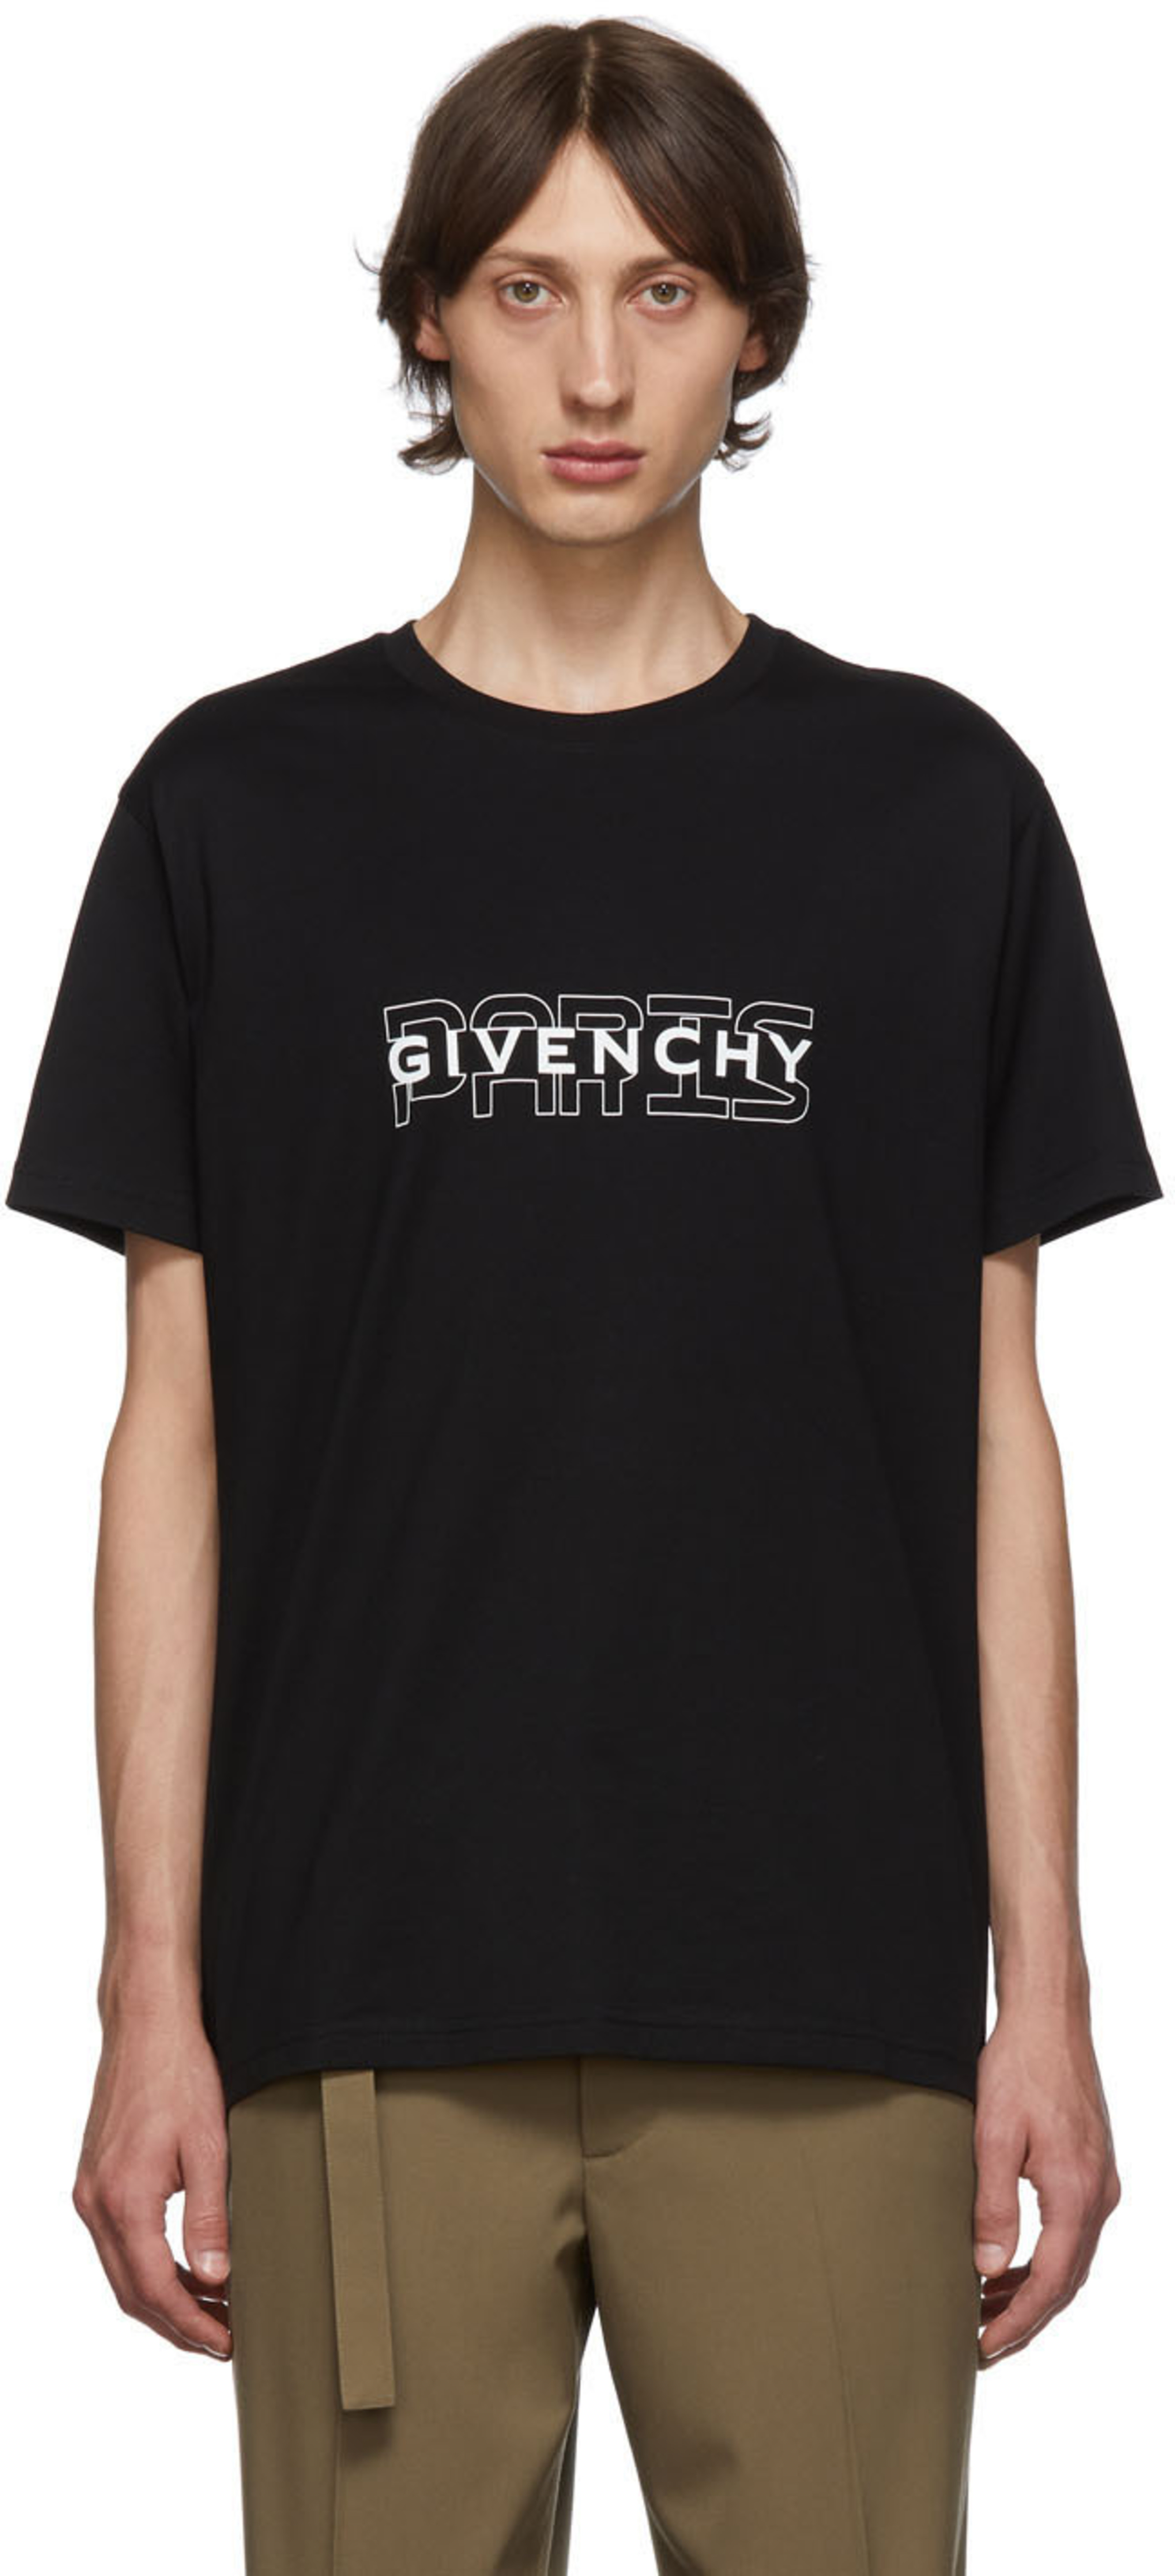 642ed753c6c36 T-shirt noir 'Givenchy Paris'